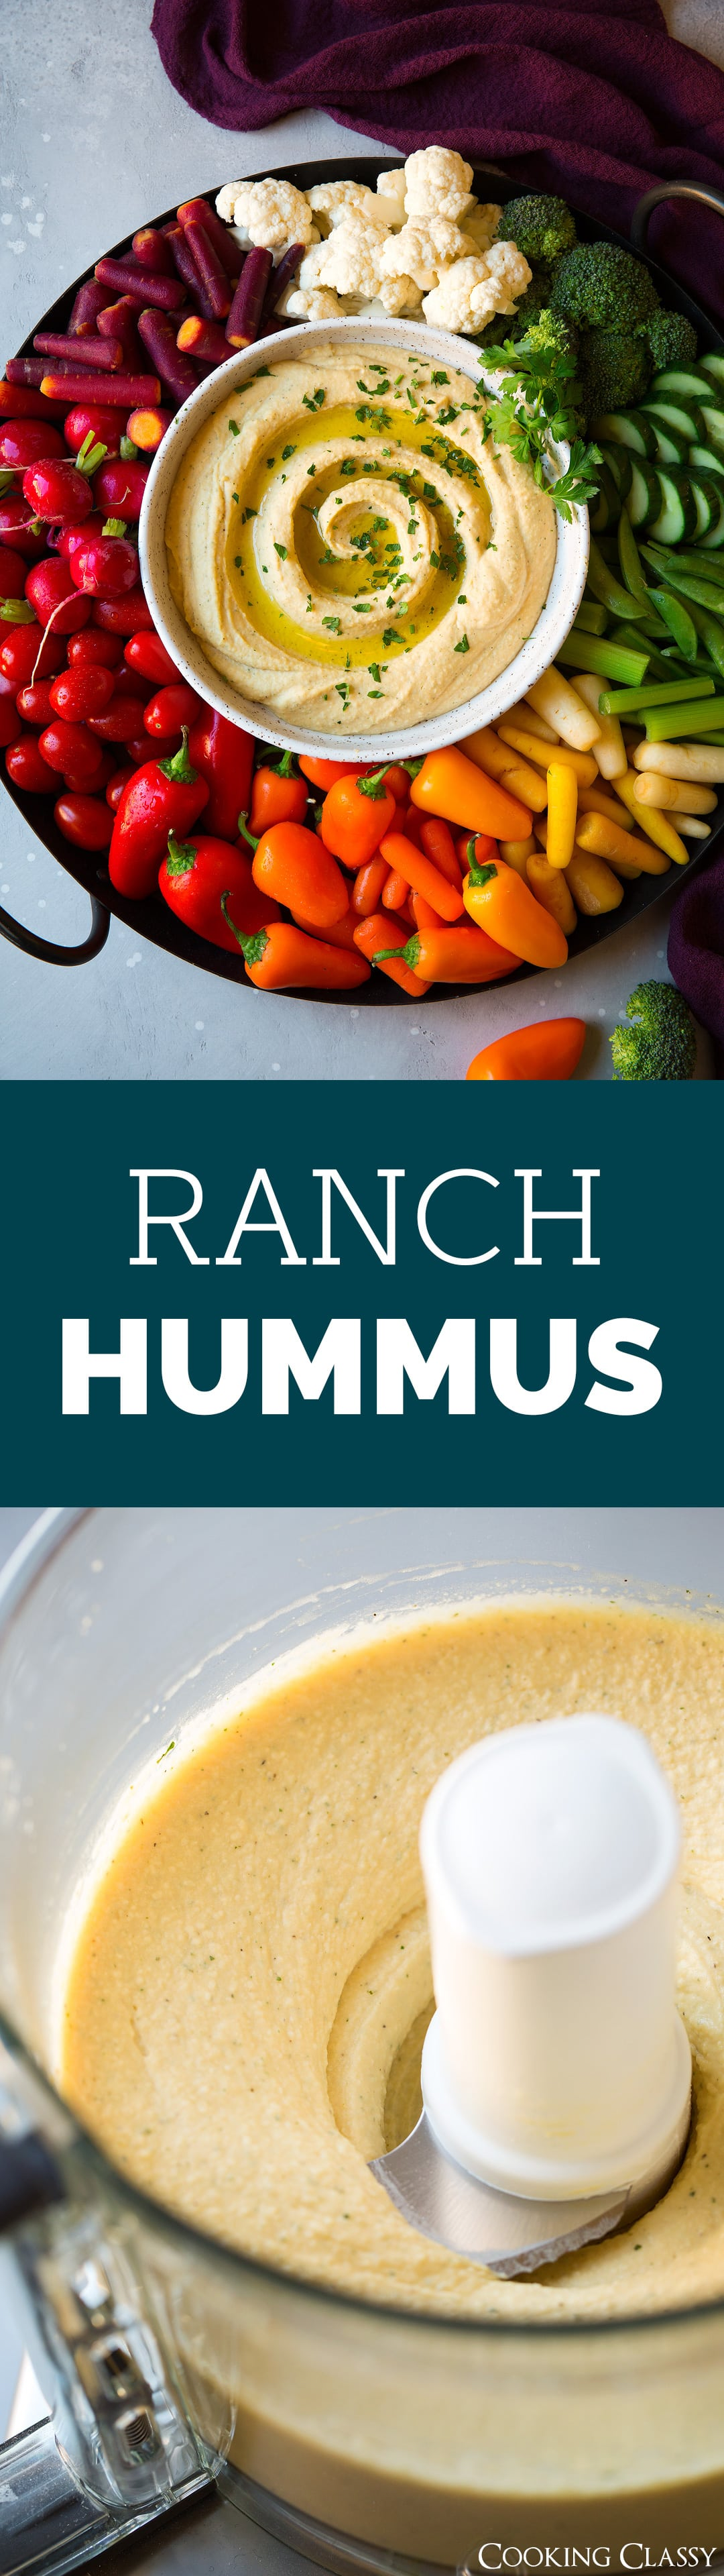 Ranch Hummus - flavorful, easy to make Ranch Hummus that's perfect for snacking and parties! Deliciously creamy with the just the right touch of that classic ranch taste. #ranch #hummus #dip #appetizer #partyfood